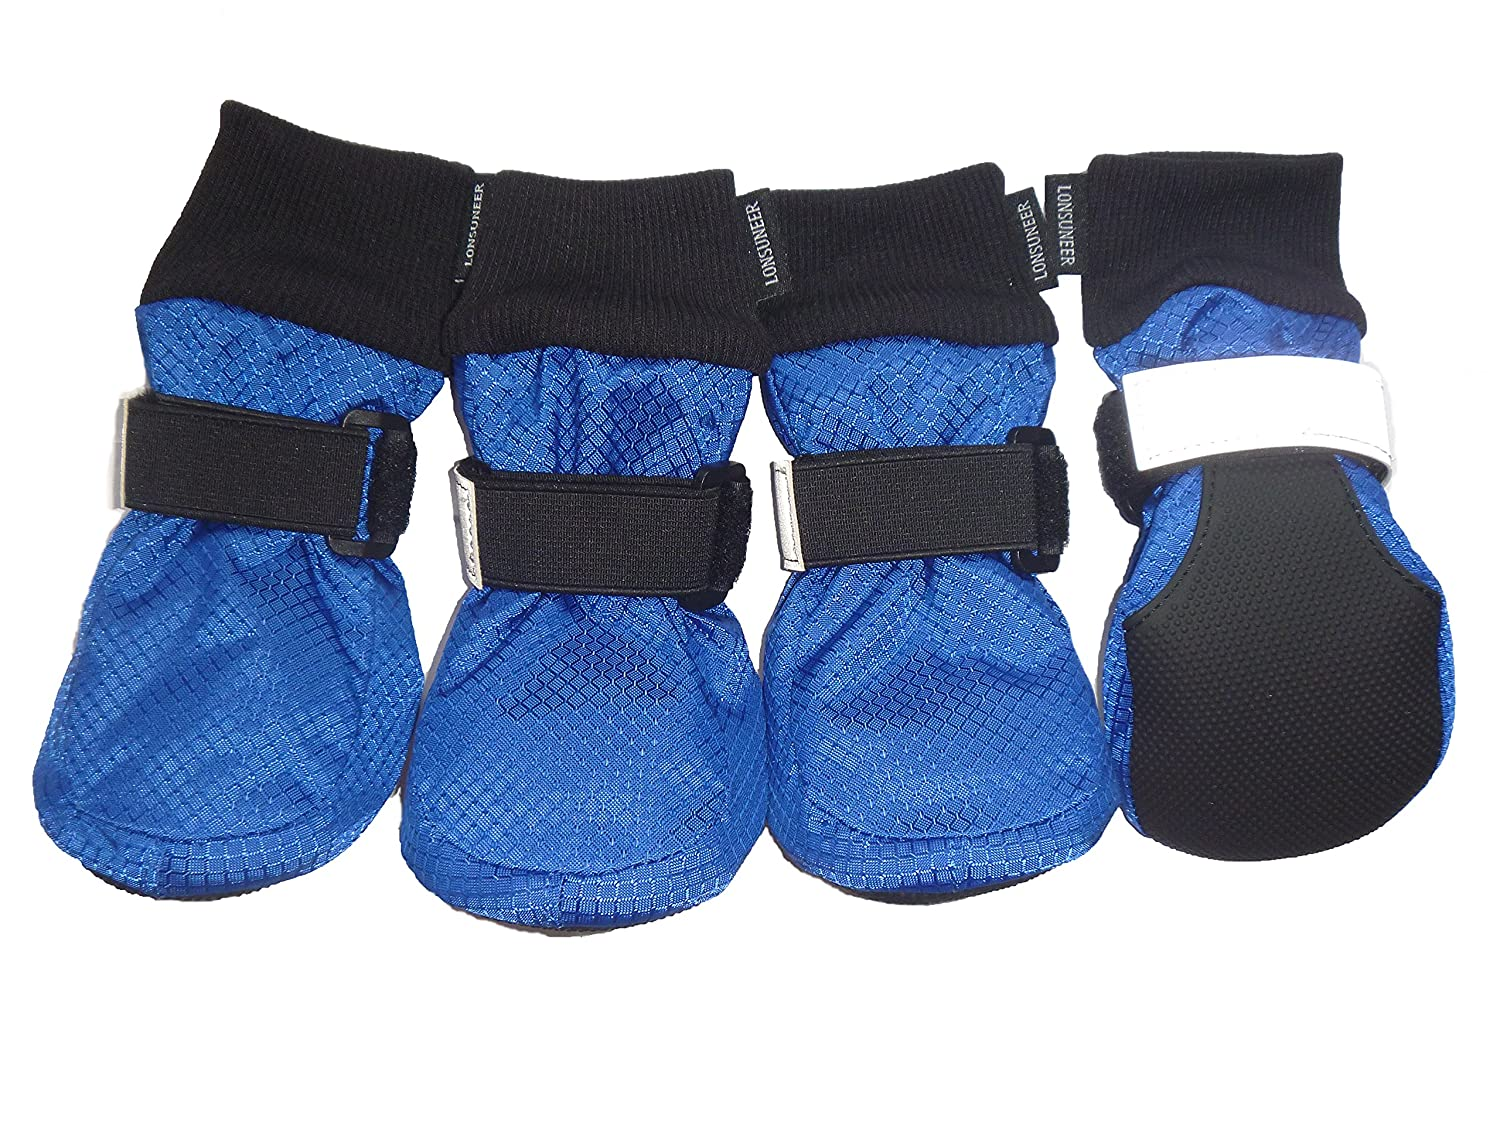 bluee Large ( L 3.15 x W 2.83 inch ) bluee Large ( L 3.15 x W 2.83 inch ) LONSUNEER Paw Predector Dog Boots Soft Sole Nonslip Safe Reflective Set of 4 color bluee Size Large